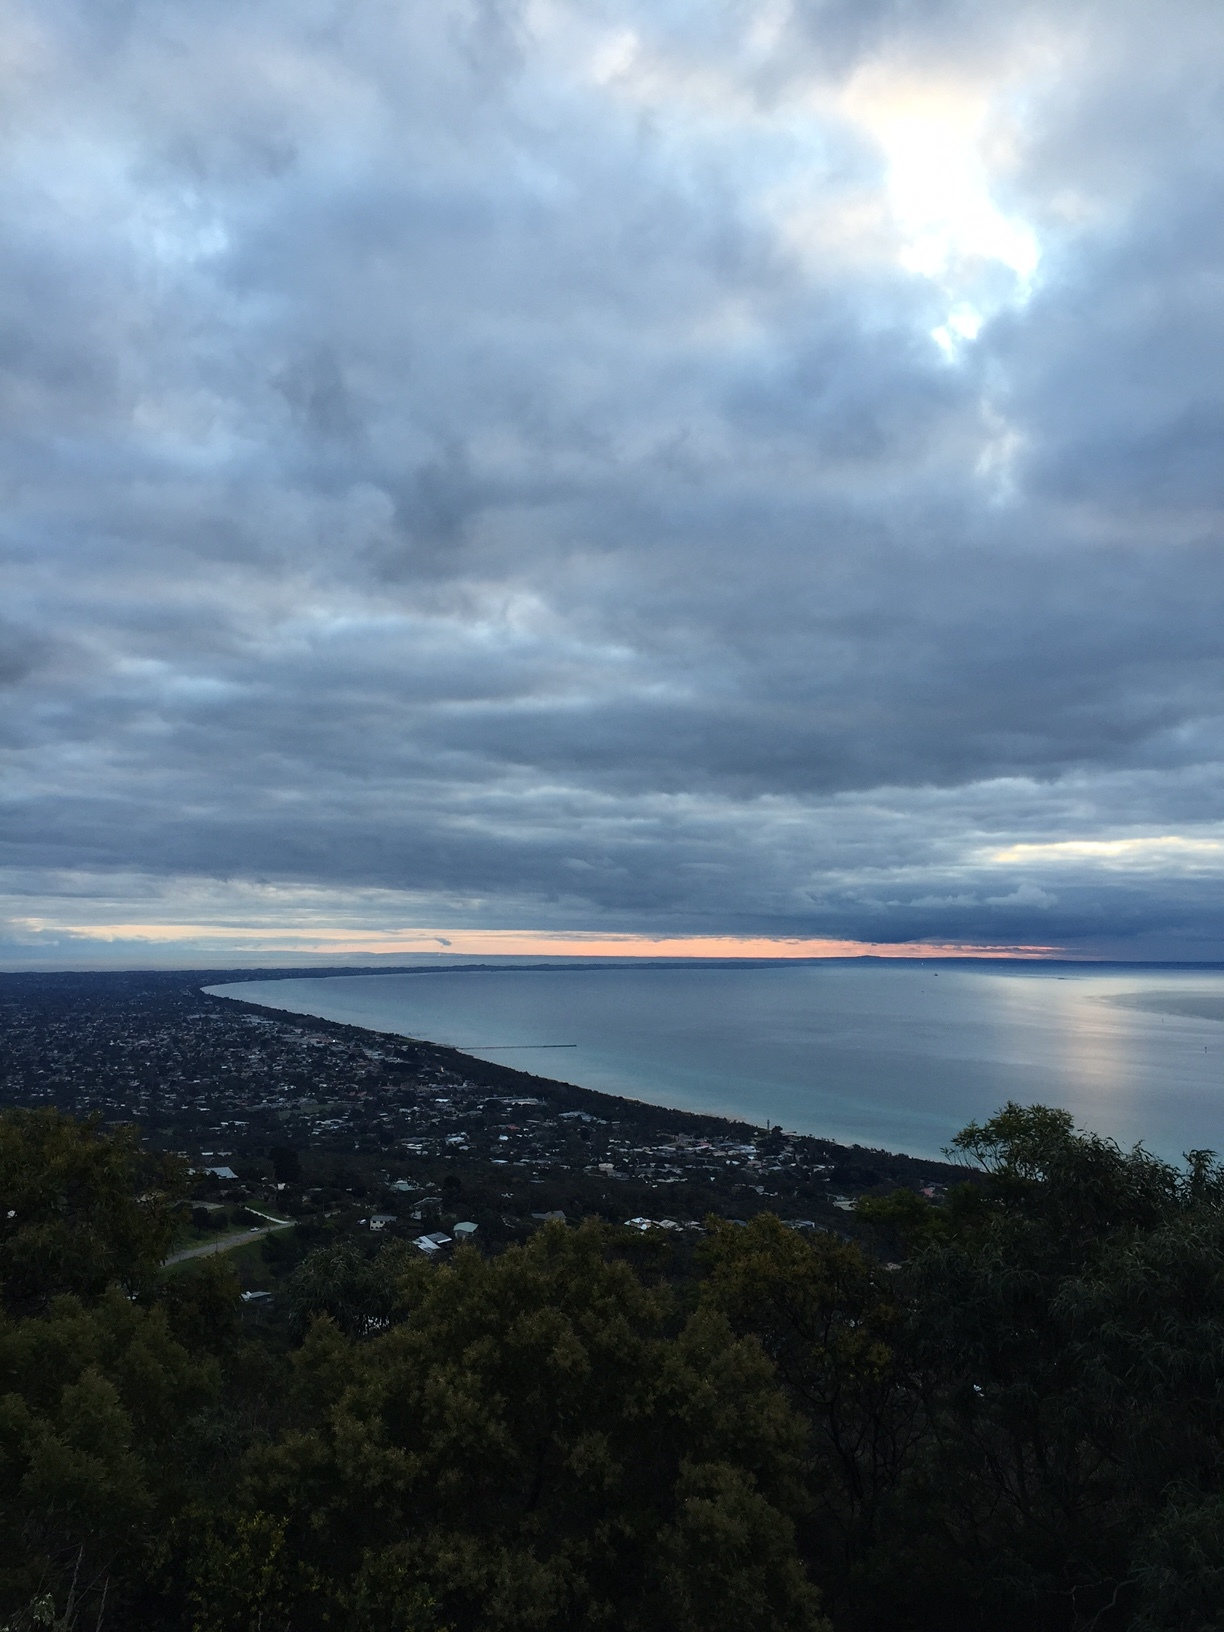 Clouds keeping the Mornington Peninsula cozy in winter